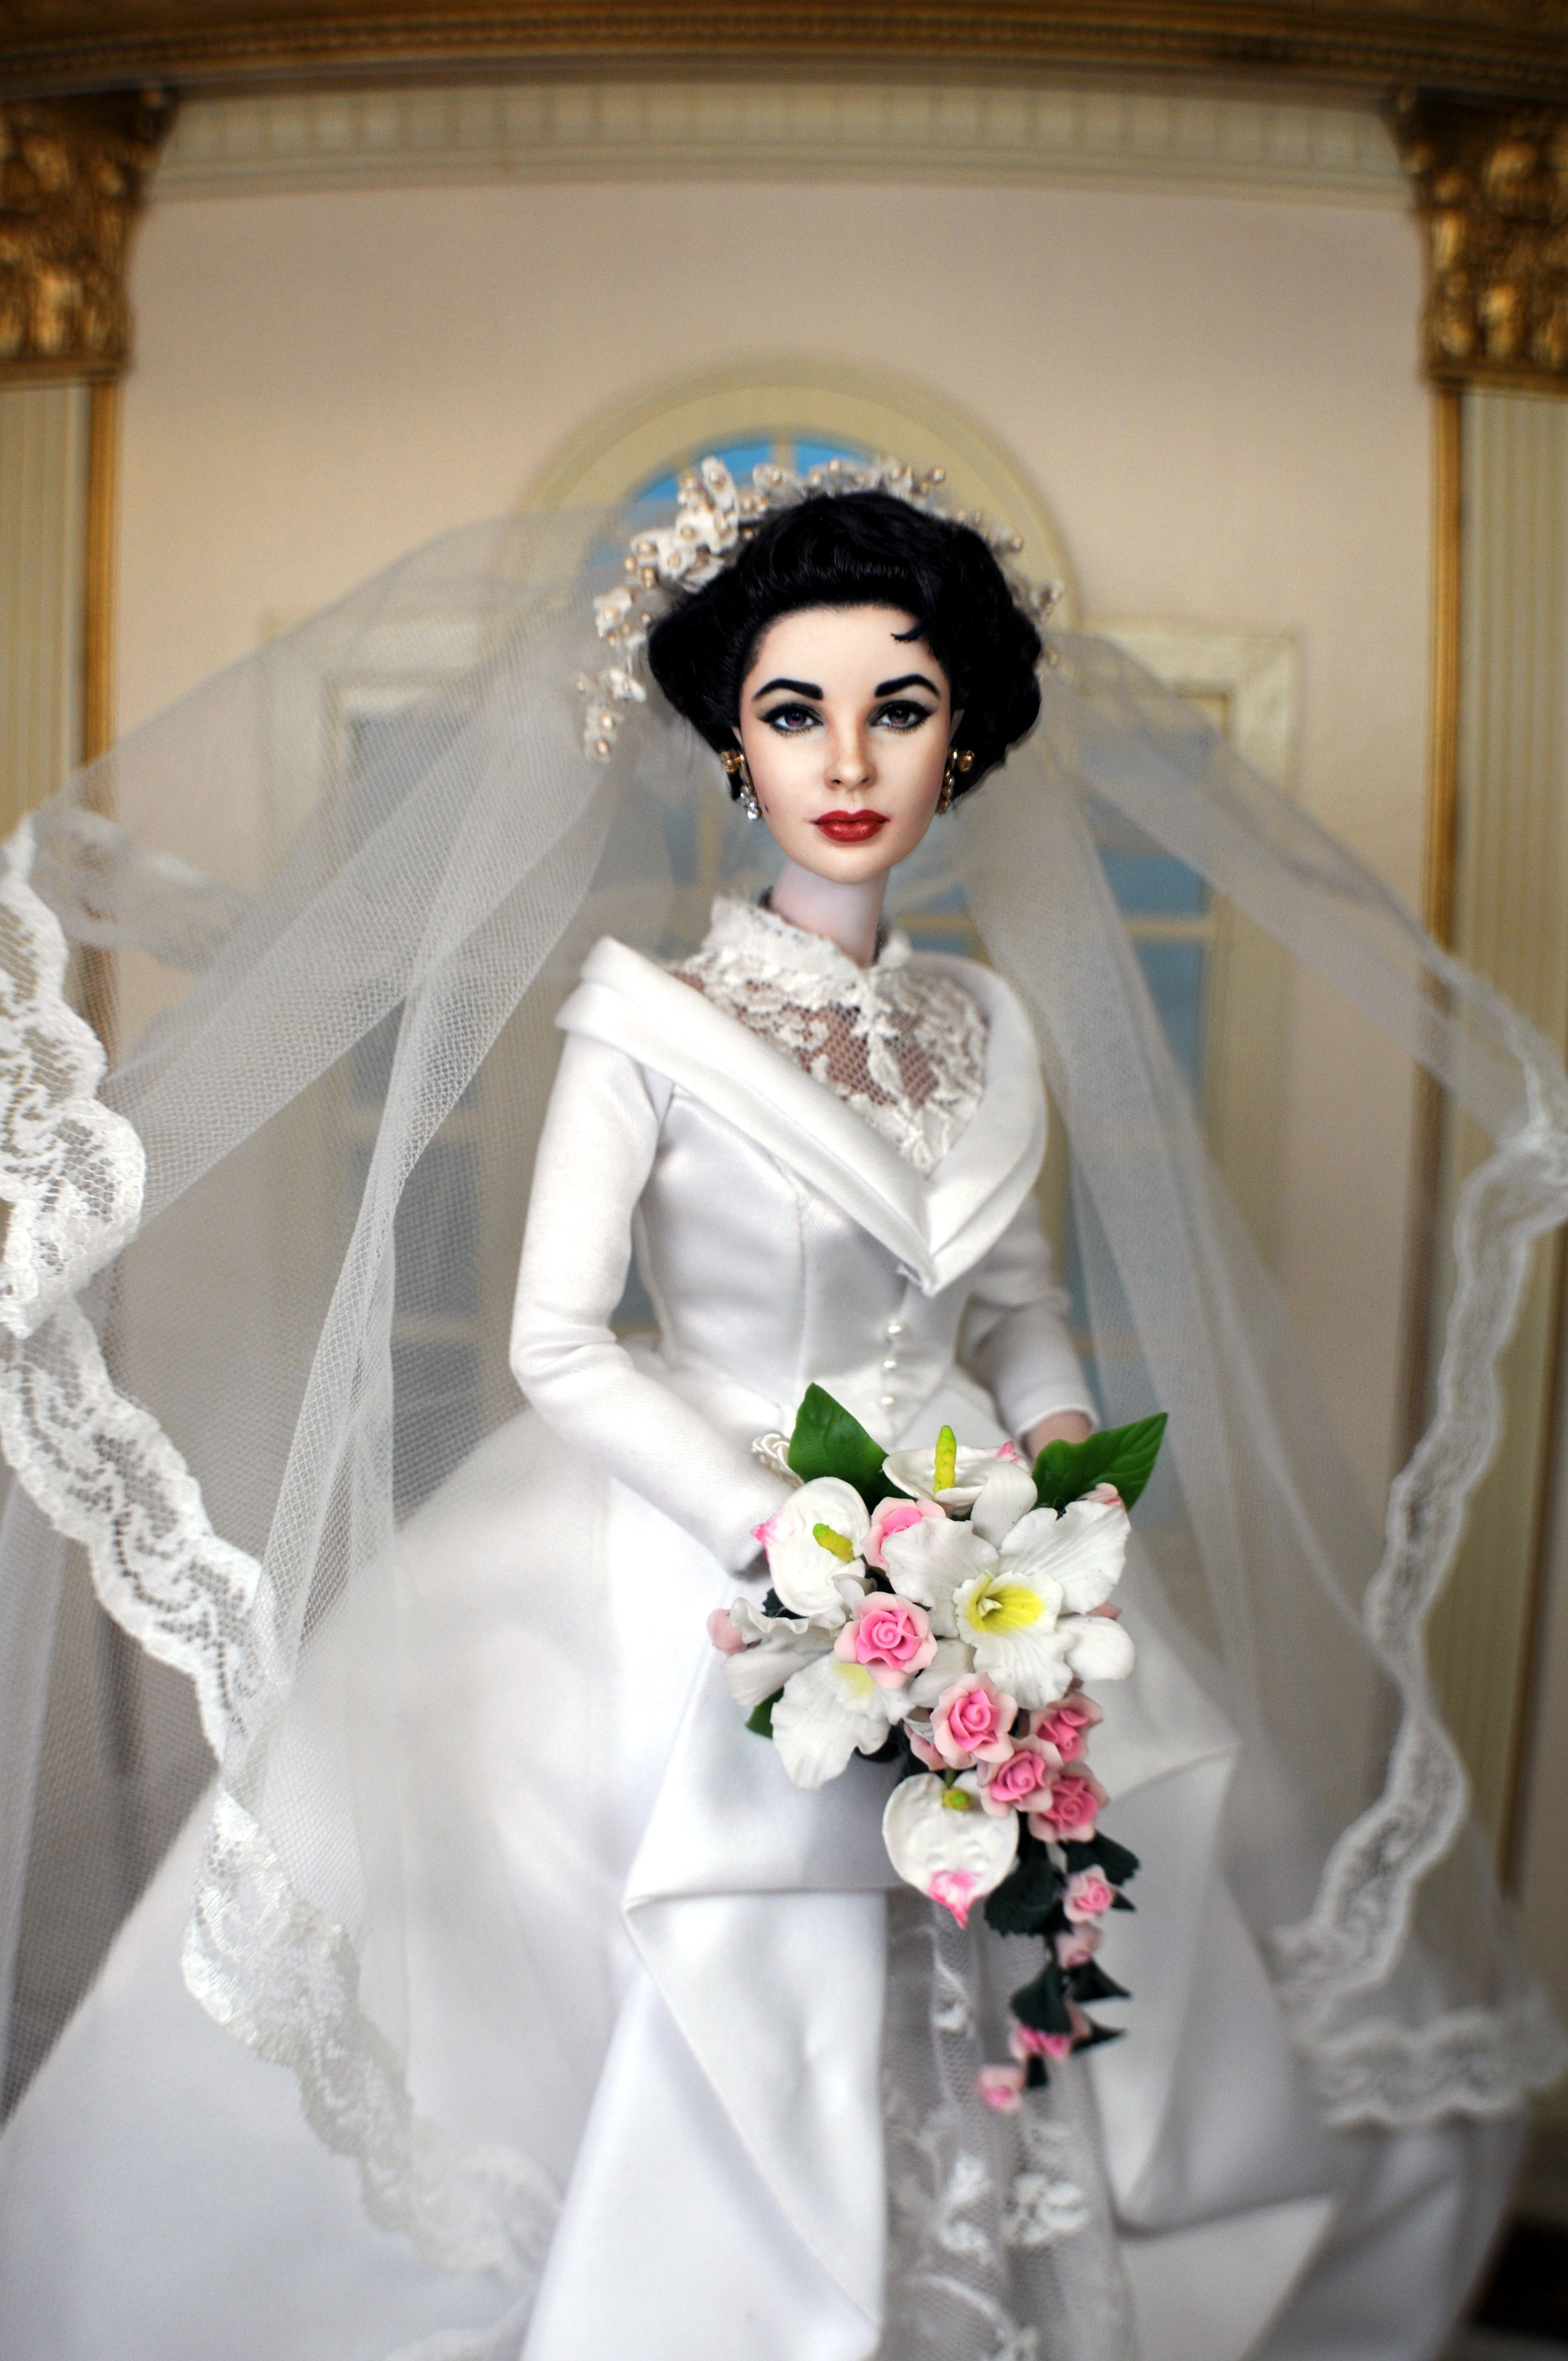 Repainted and restyled Elizabeth Taylor Barbie in the Mattel Father of the Bride Wedding Gown. Redone by Noel Cruz. See his site at http://www.ncruz.com for more of his work and visit flickr at https://www.flickr.com/photos/farrahf/ for more photos.